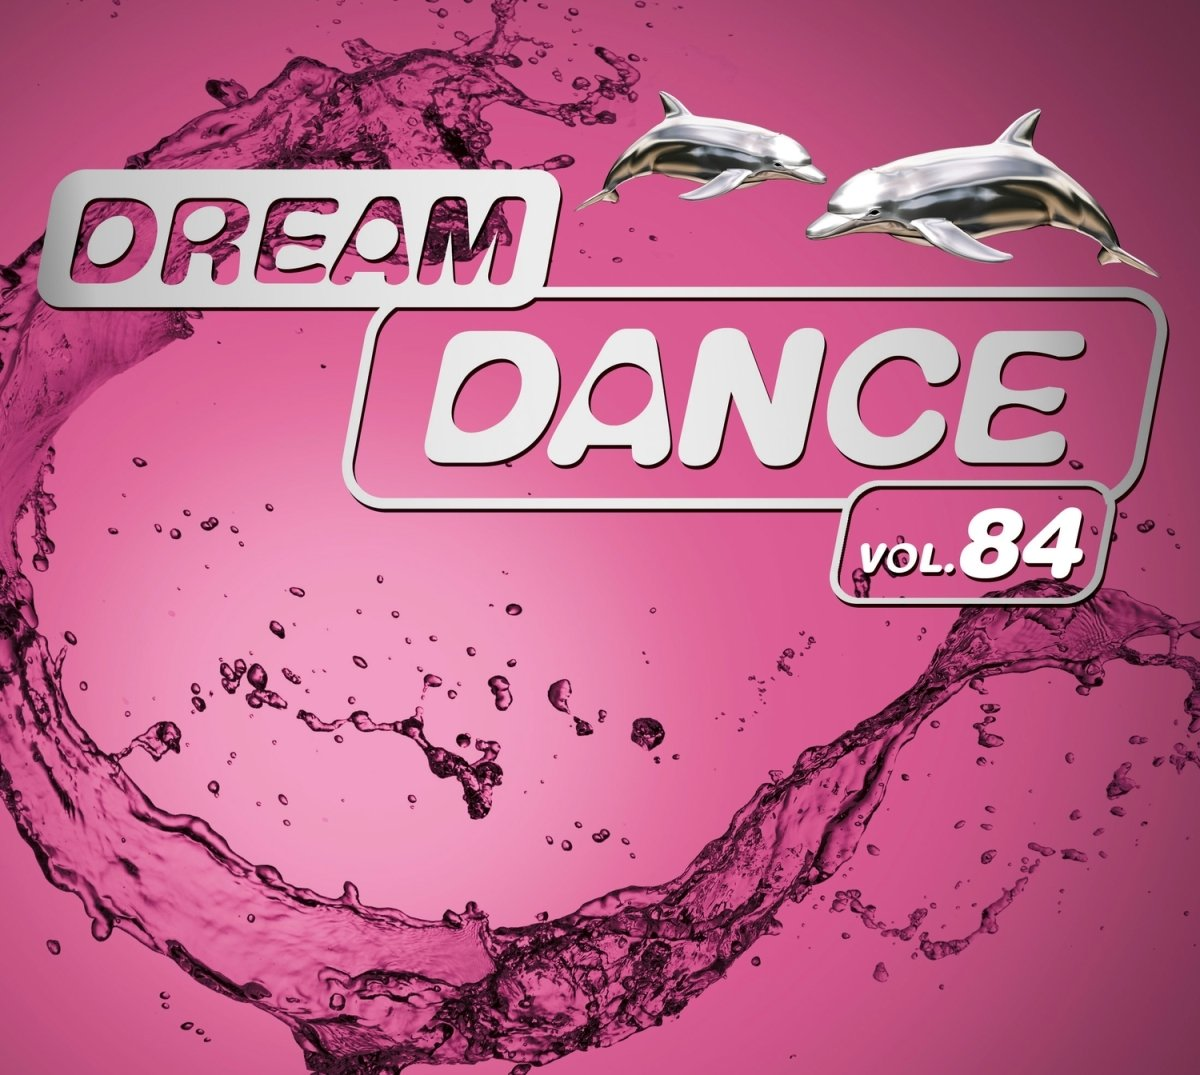 VA - Dream Dance Vol. 84 - 3CD - FLAC - 2018 - VOLDiES Download